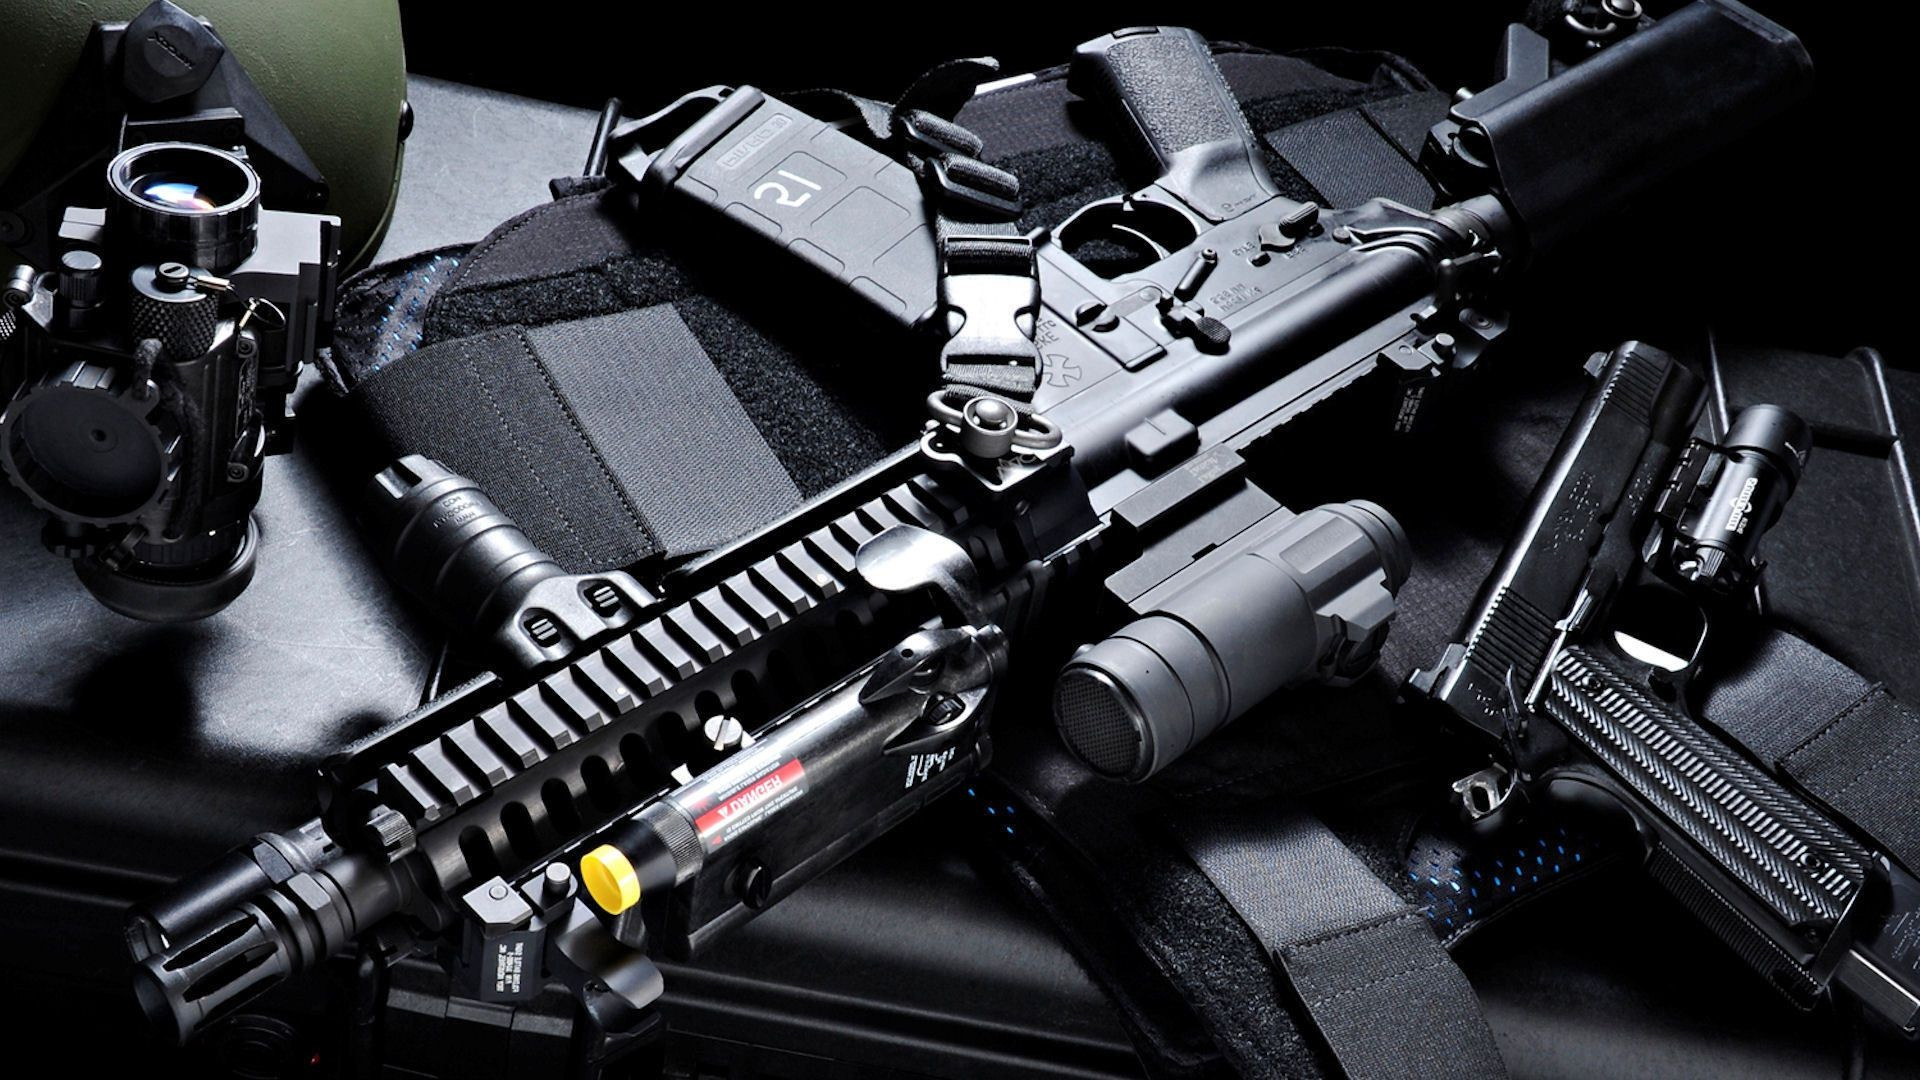 Gun Wallpaper Android Download: The Assault Rifle Armor Machine Gun Sight. Android